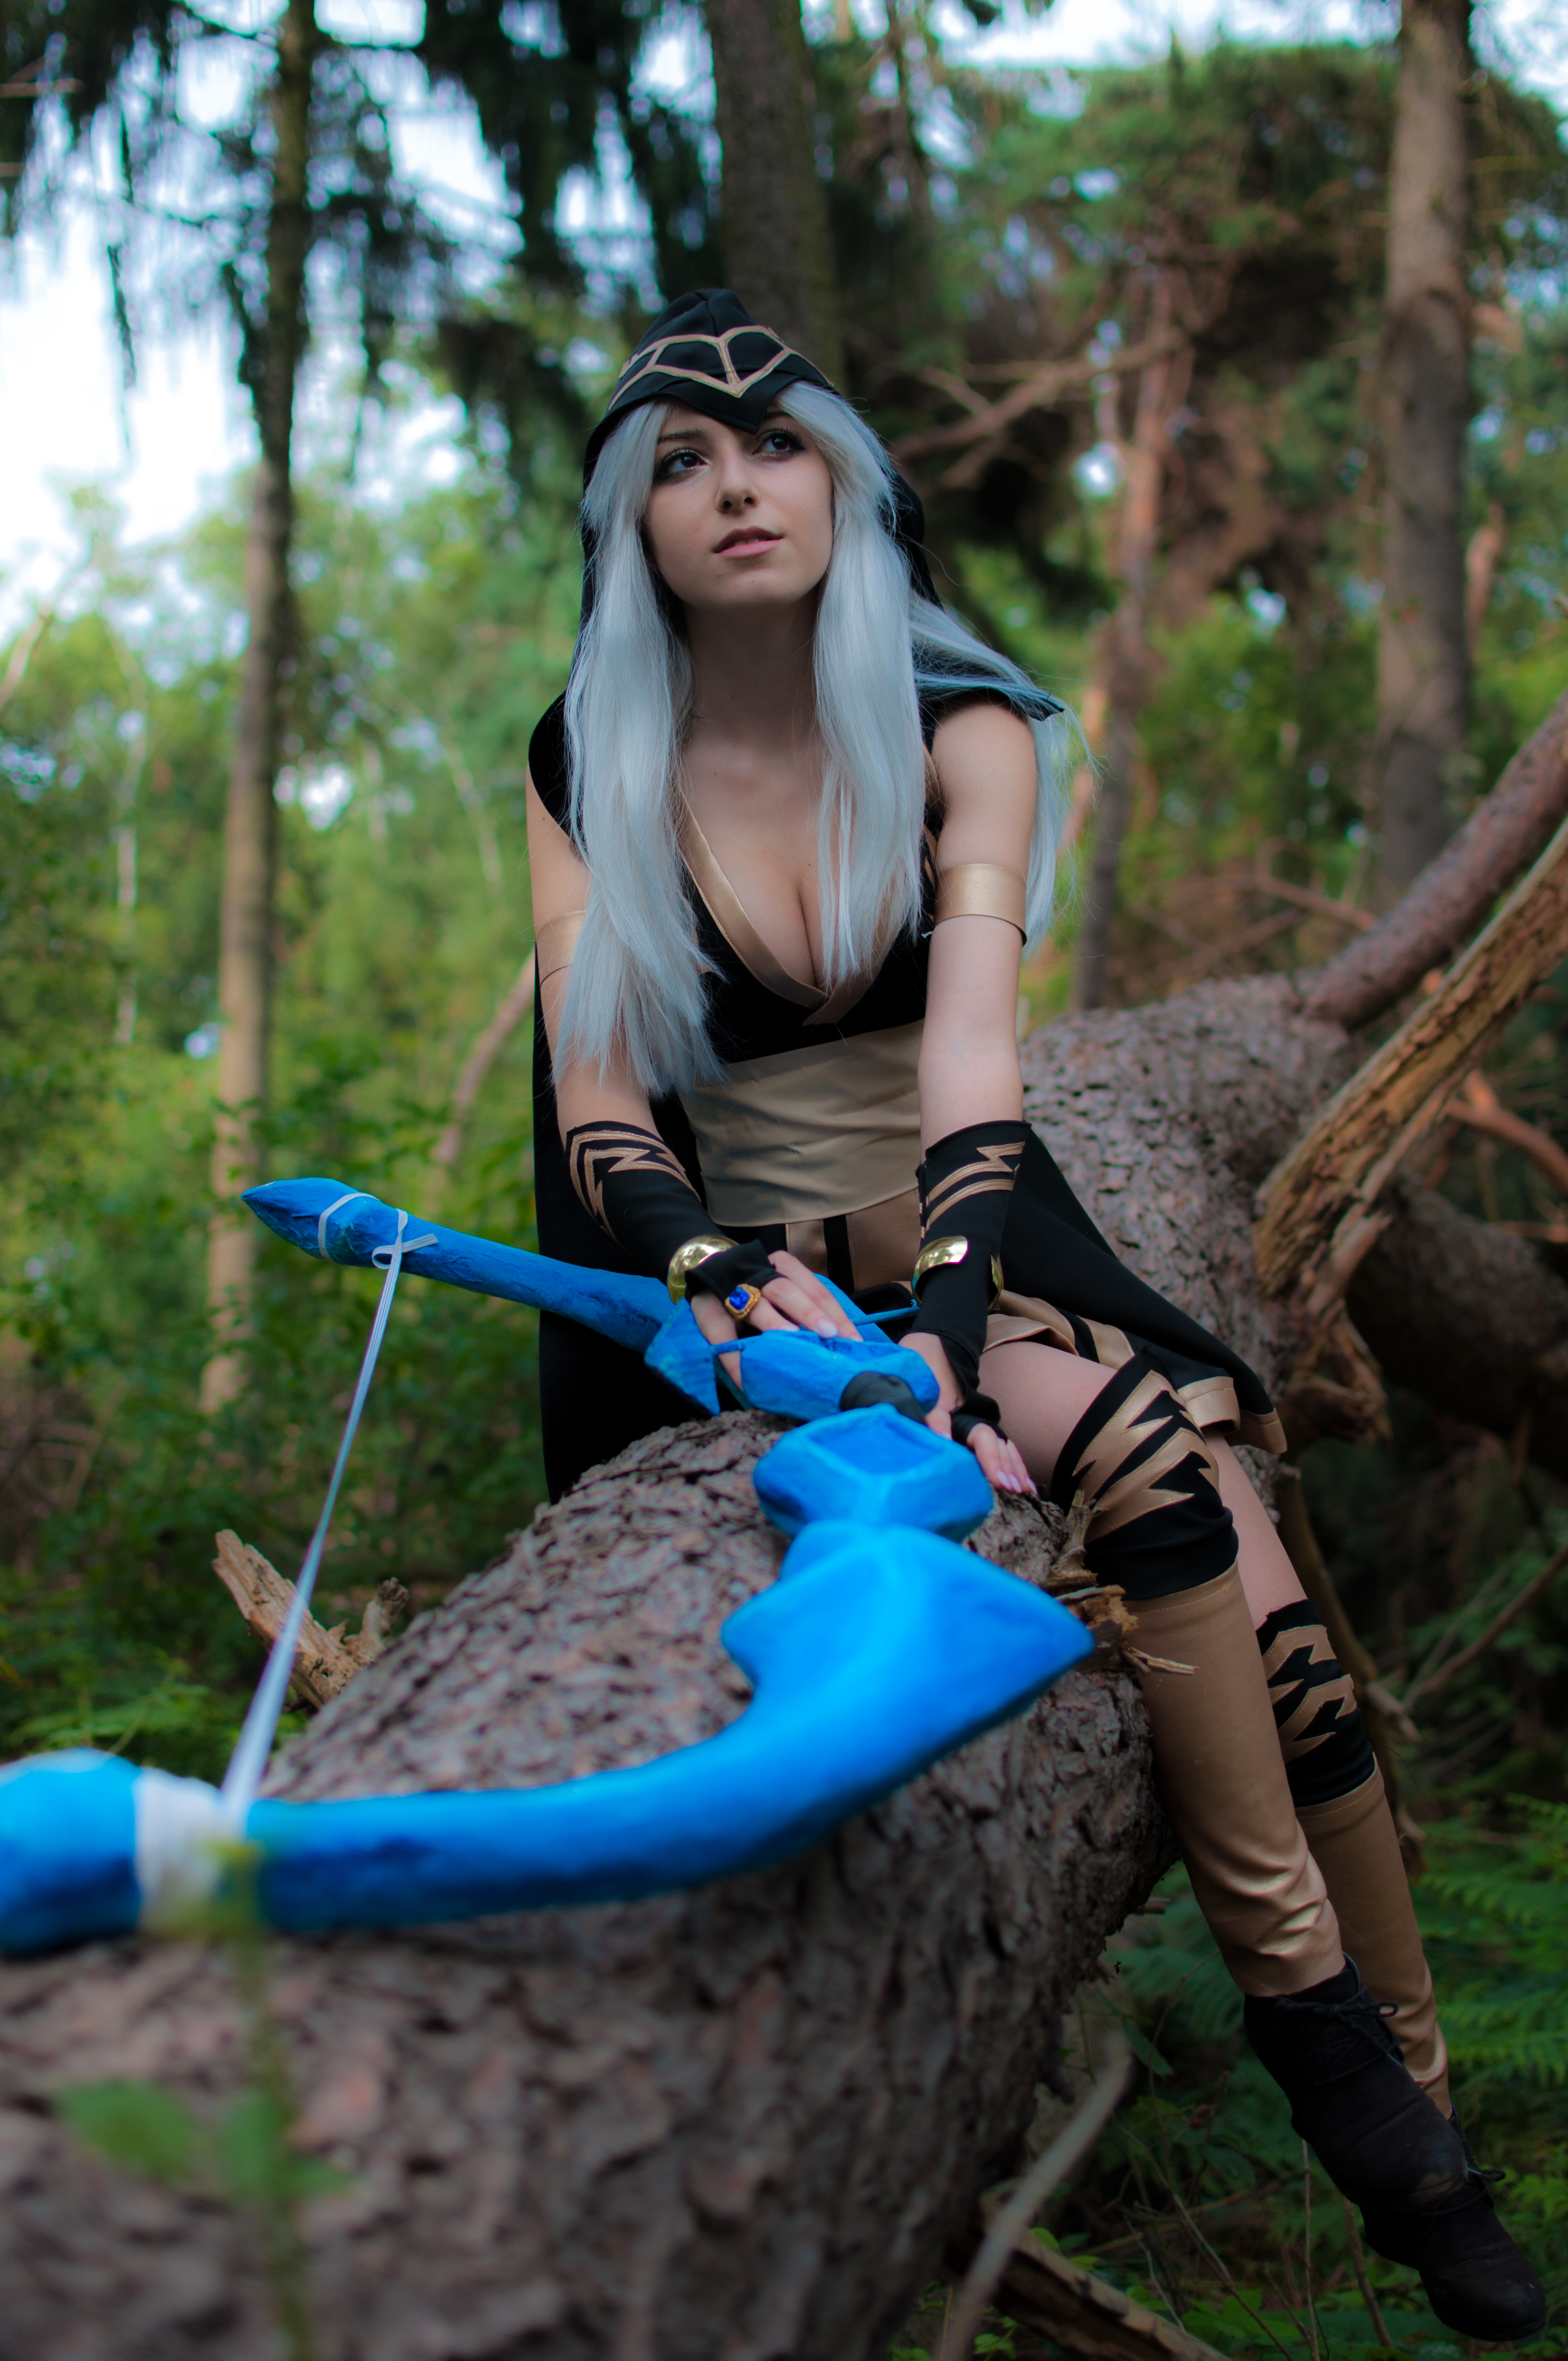 Ashe Cosplay - League of Legends by AnissaCosplay on